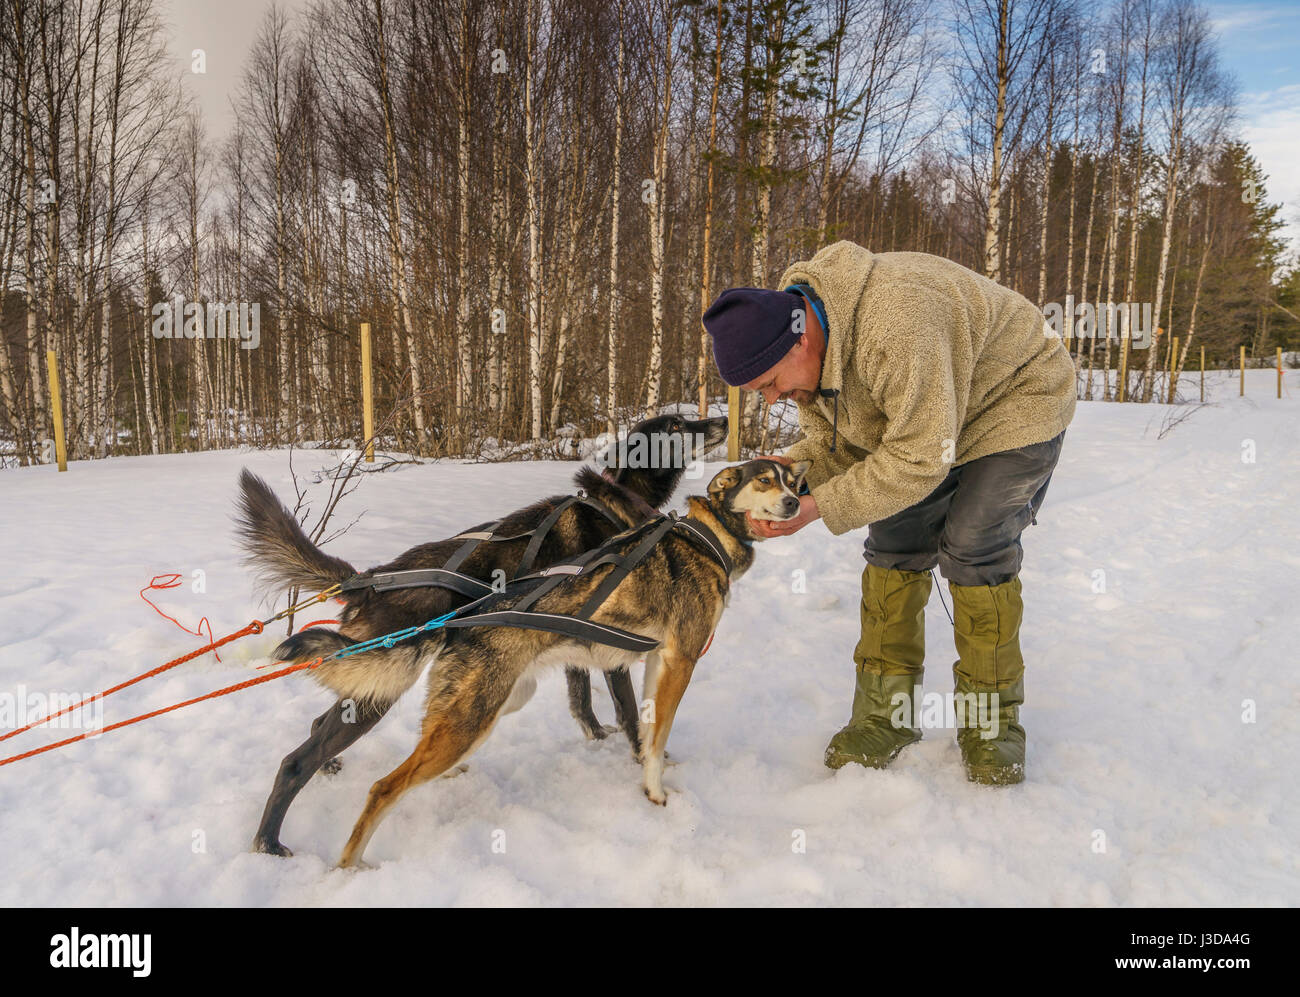 Man with huskies, sled dogs, Lapland, Finland - Stock Image